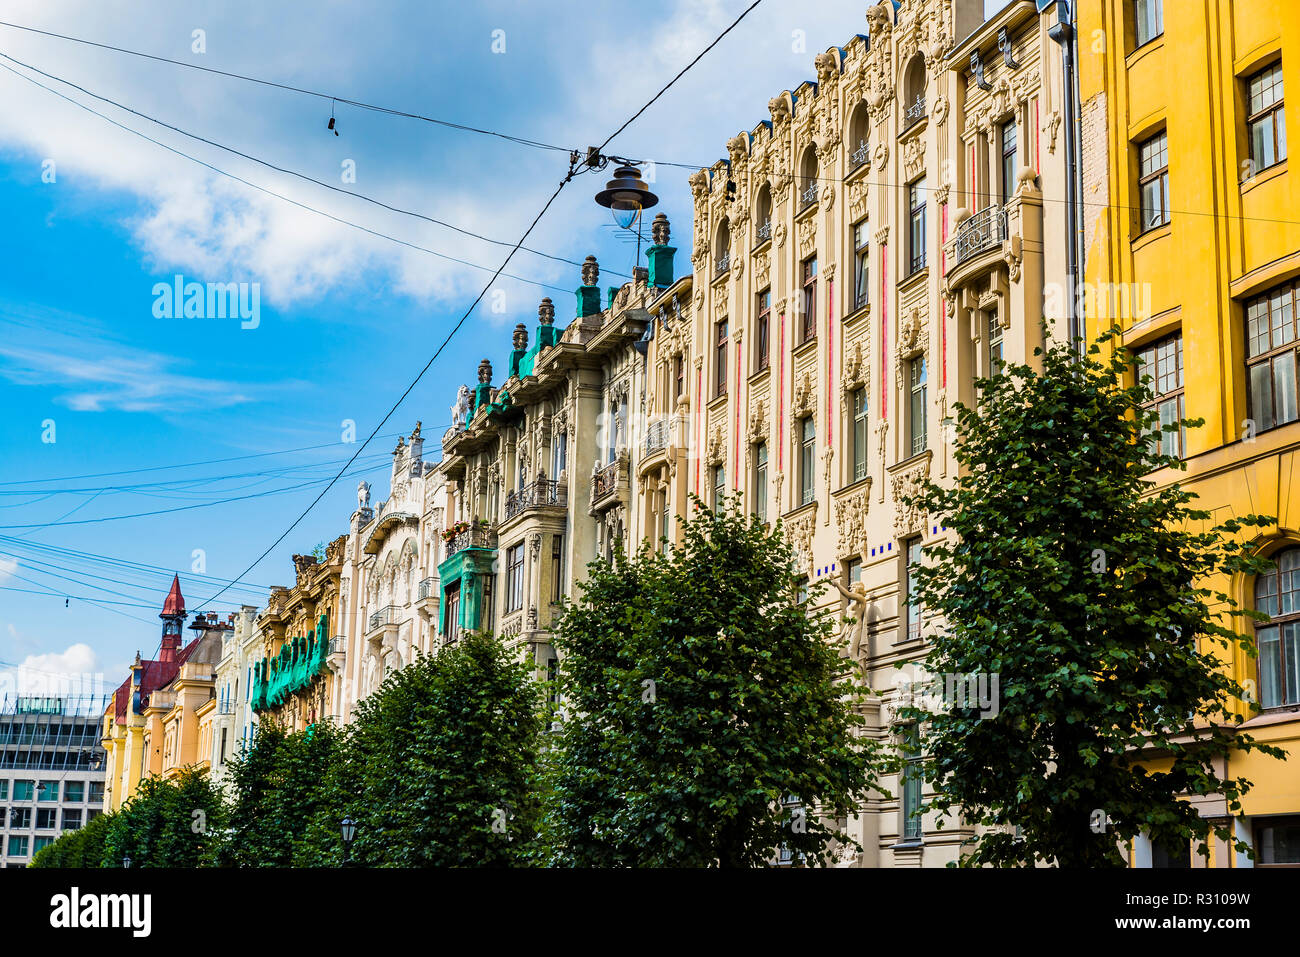 Art nouveau architecture in Riga - Albert Street is a street in central Riga known for its Art Nouveau buildings. Riga, Latvia, Baltic states, Europe. - Stock Image